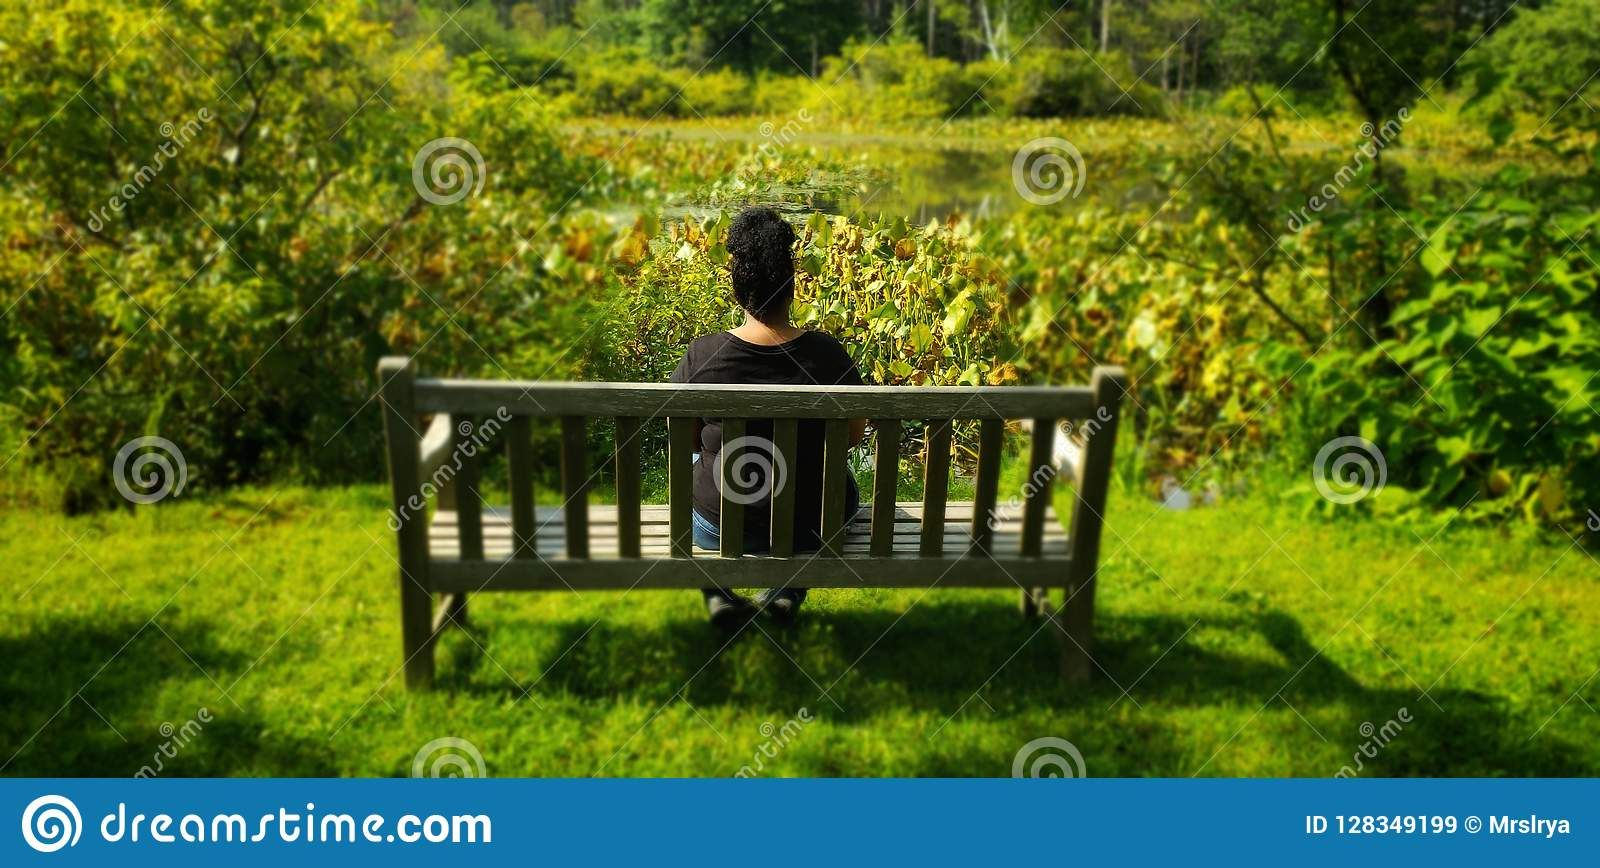 Photo About Girl Sitting On A Park Bench Alone Image Of Meditation Female Color 128349199 Park Bench Bench Park